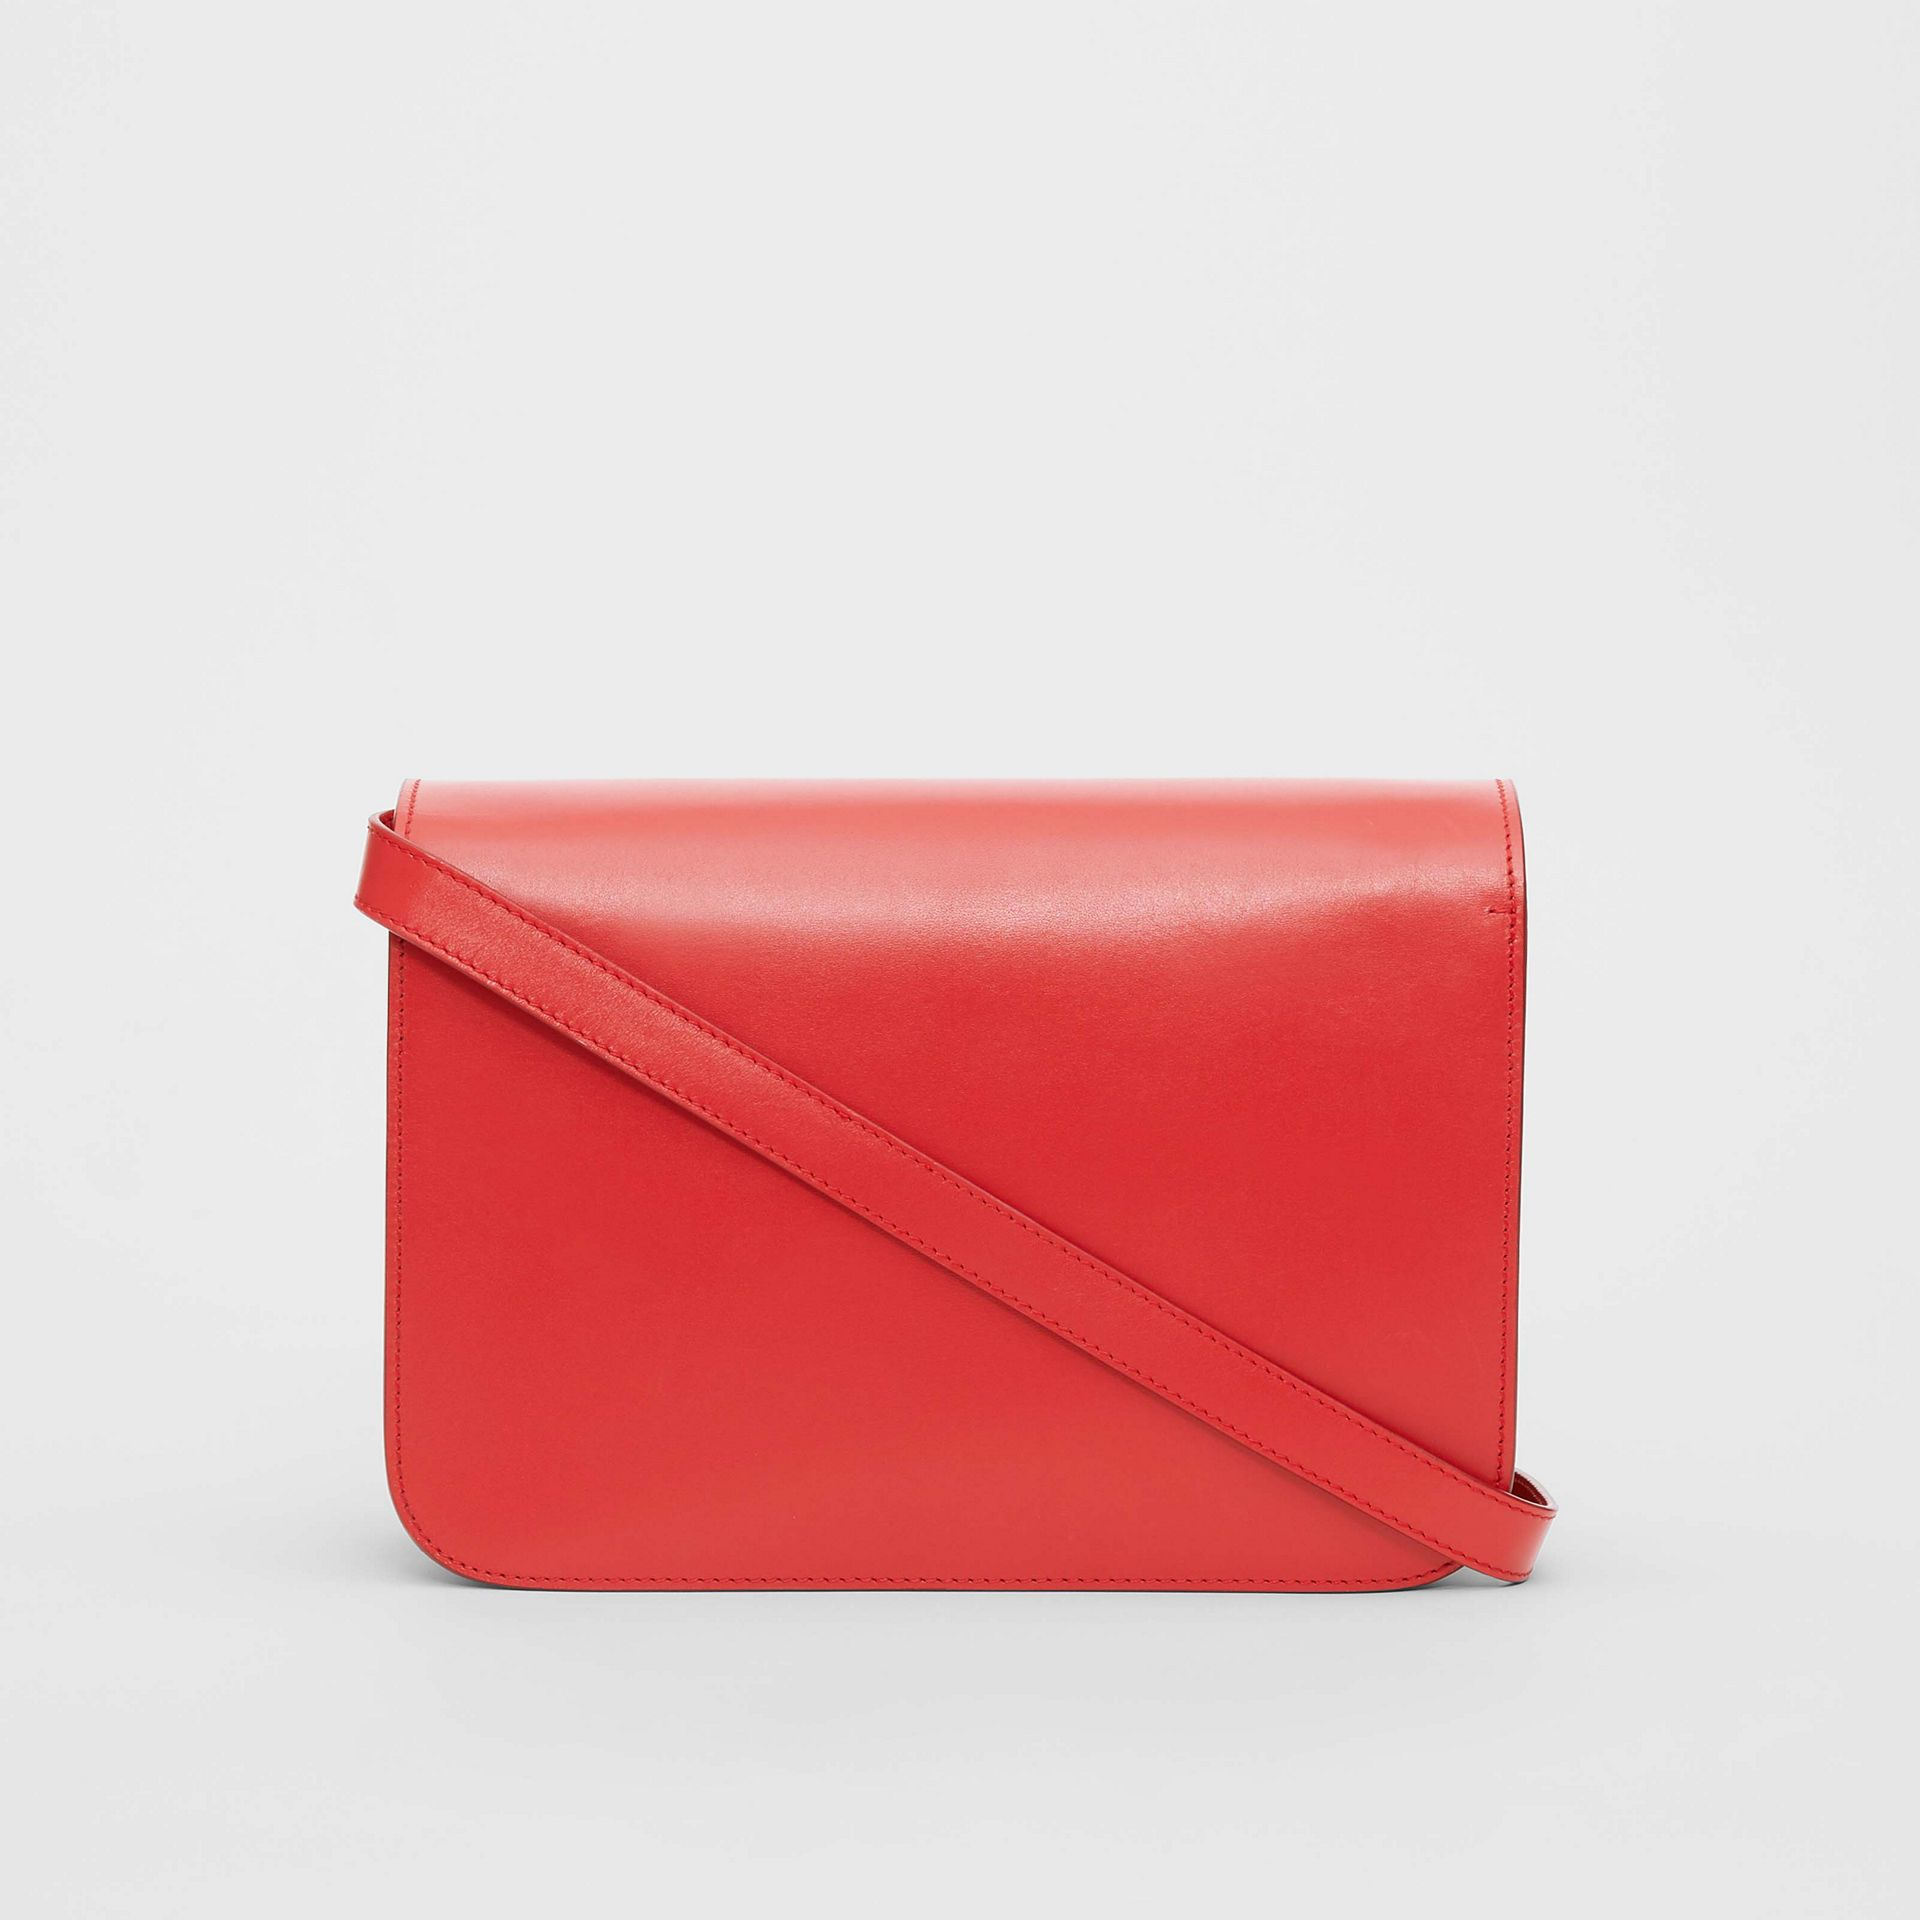 Medium Leather TB Bag in Bright Red - Women | Burberry - gallery image 7